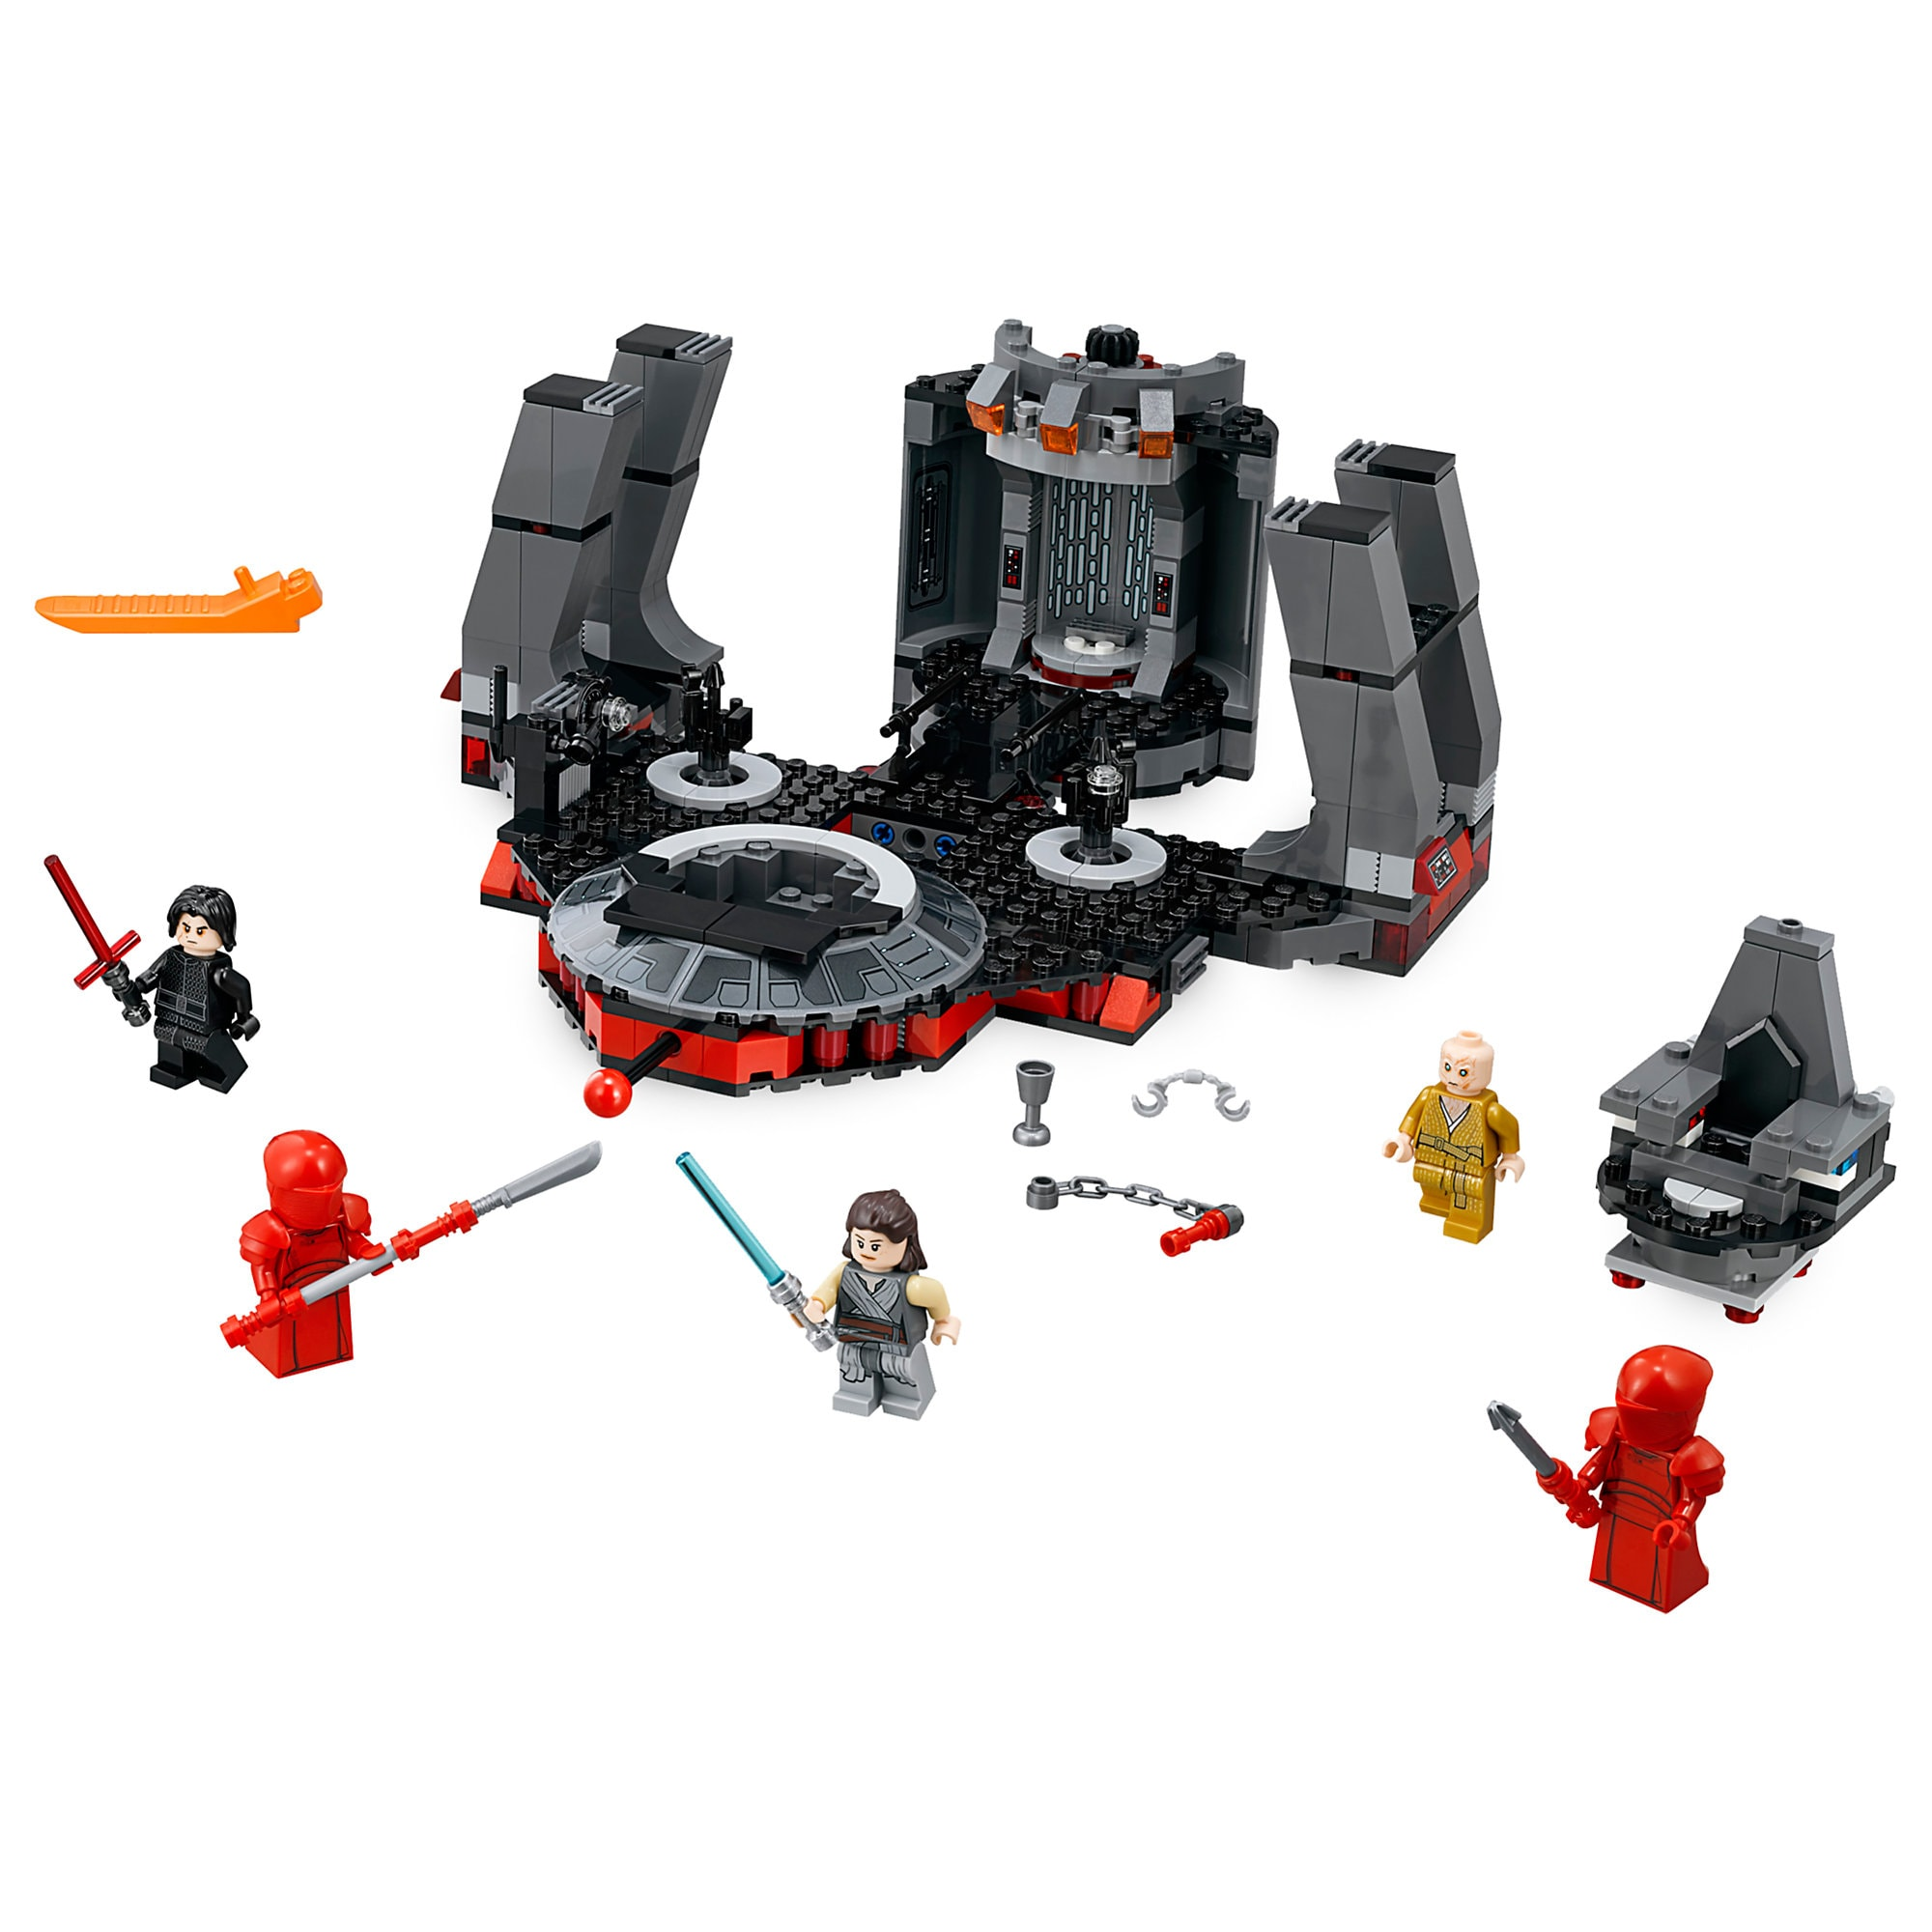 Snoke's Thrown Room Playset by LEGO - Star Wars: The Last Jedi